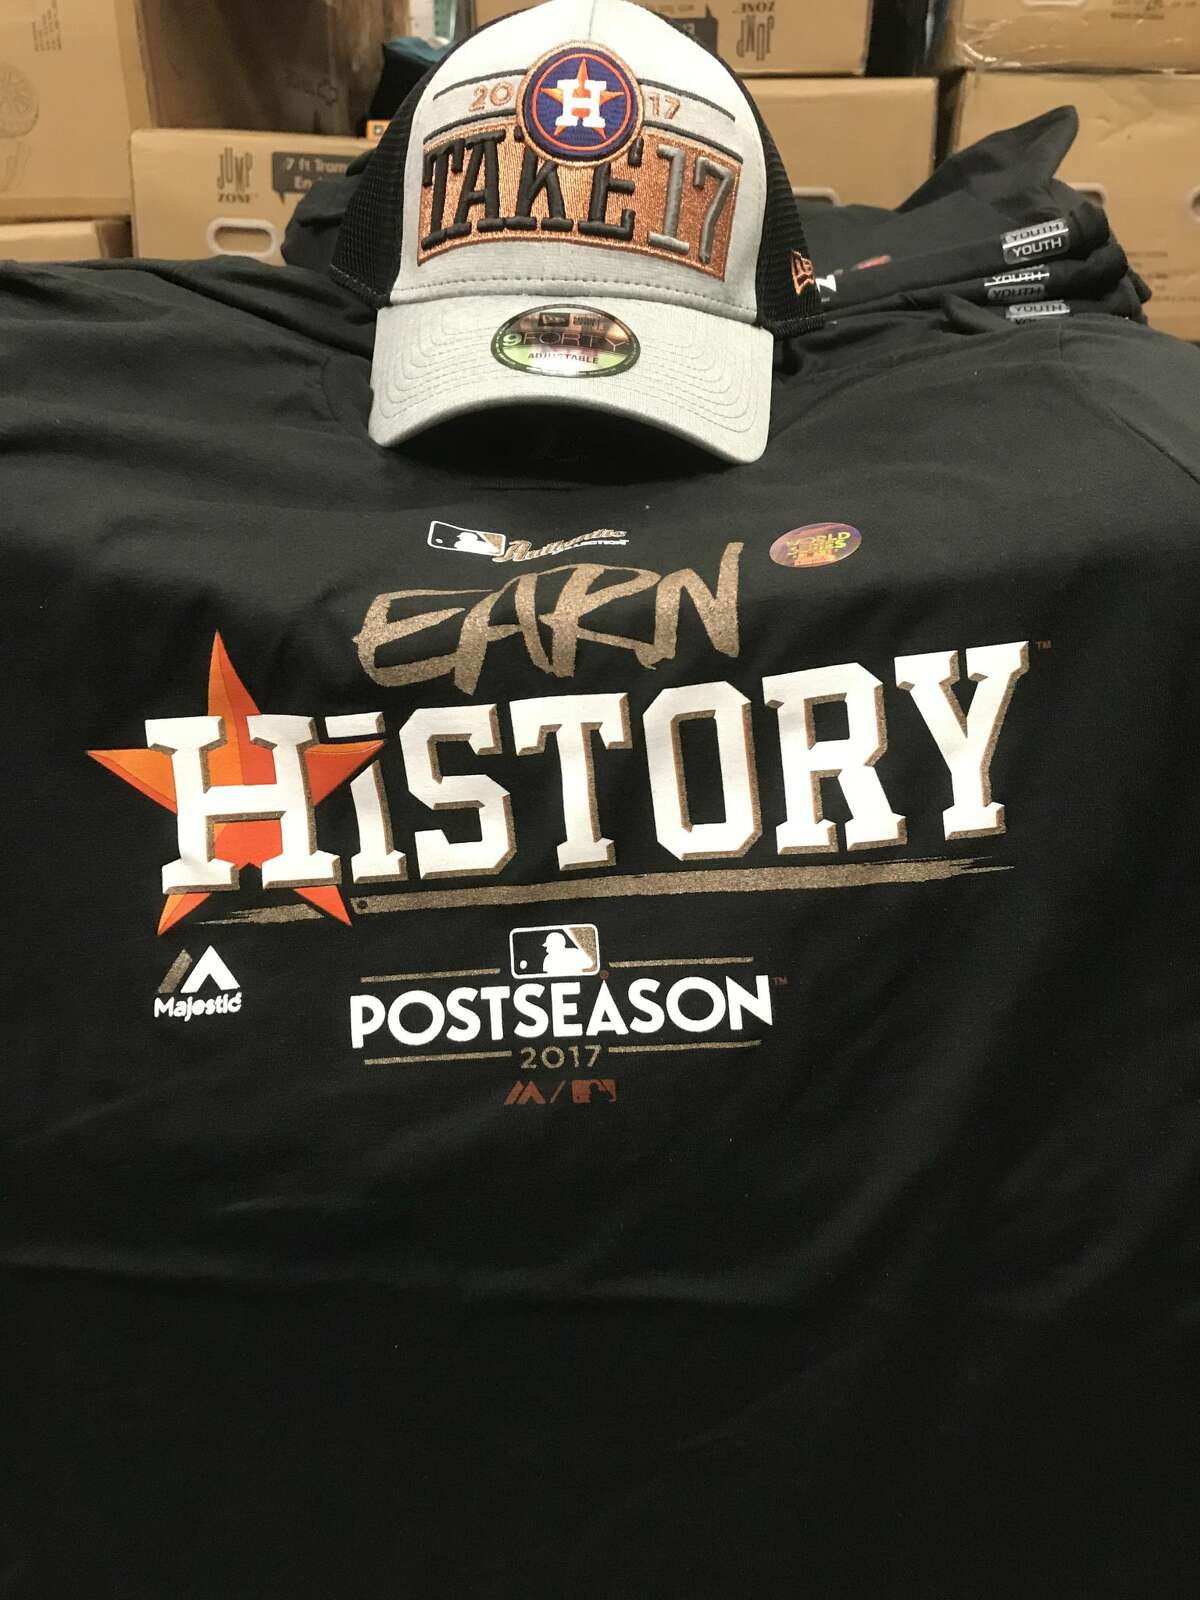 All Houston area Academy Sports + Outdoors stores already are selling new Astros playoff shirts after the Astros eliminated the Boston Red Sox on Monday to advance to the ALCS.